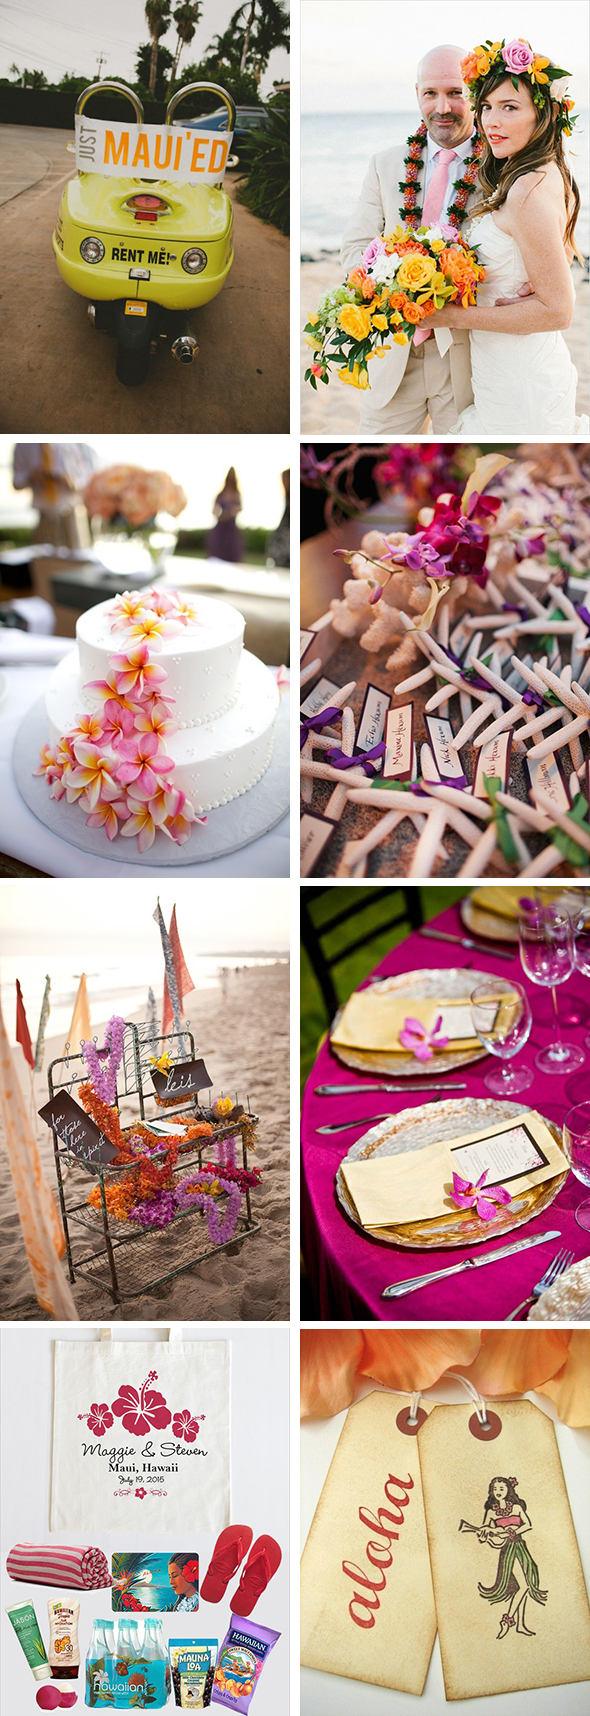 hawaii wedding deets